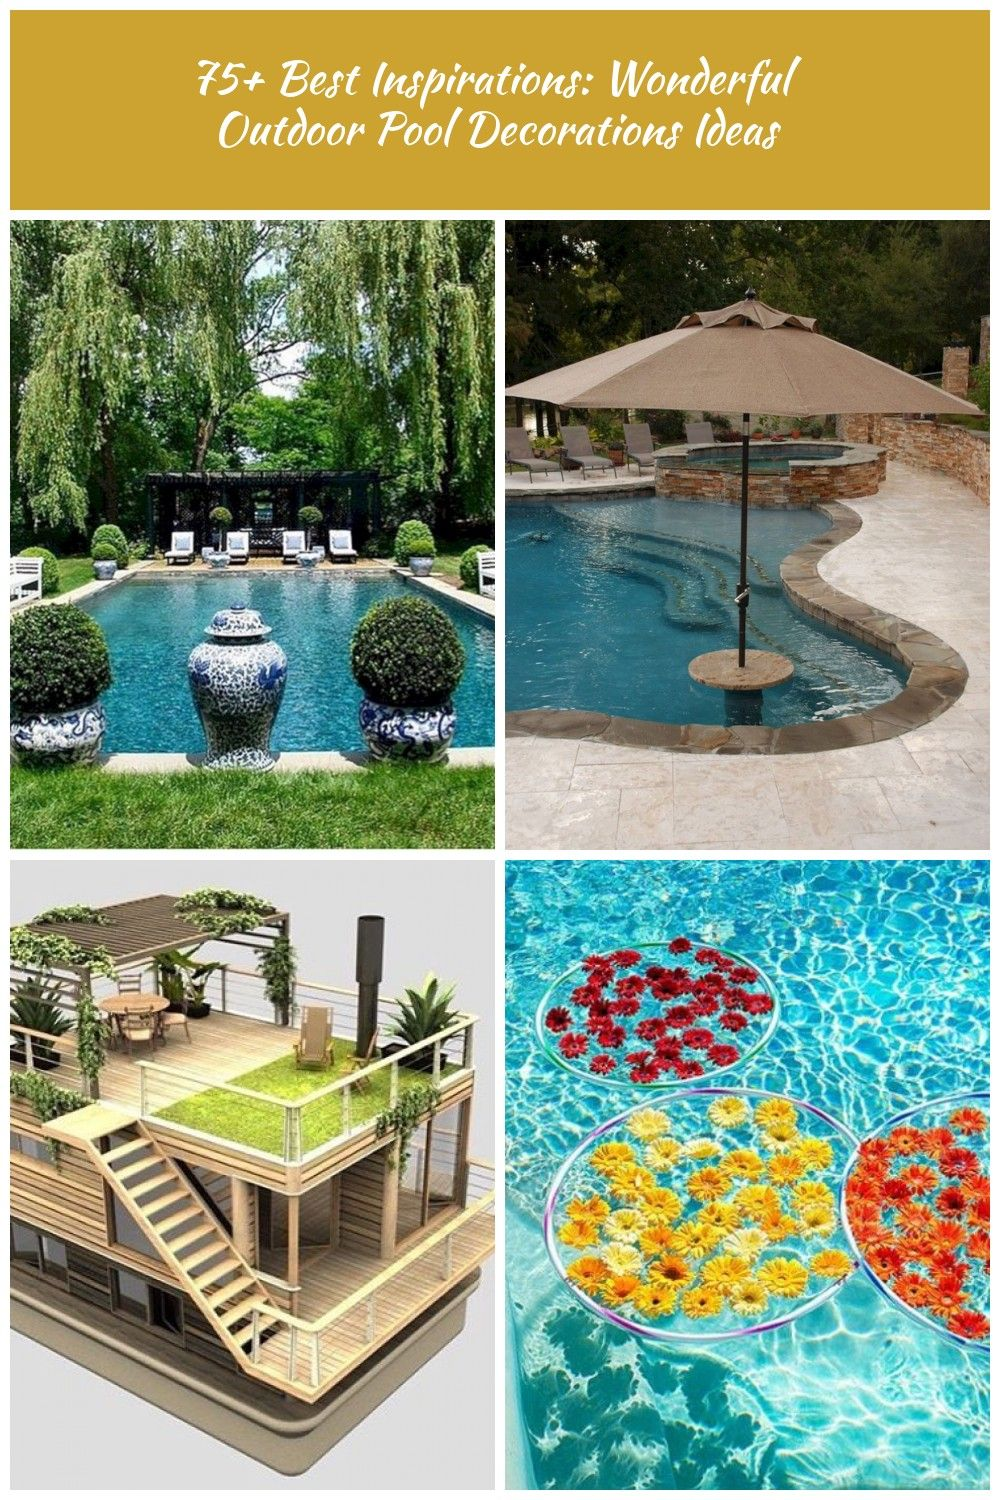 Pool Decorations 75 Best Inspirations Wonderful Outdoor Pool